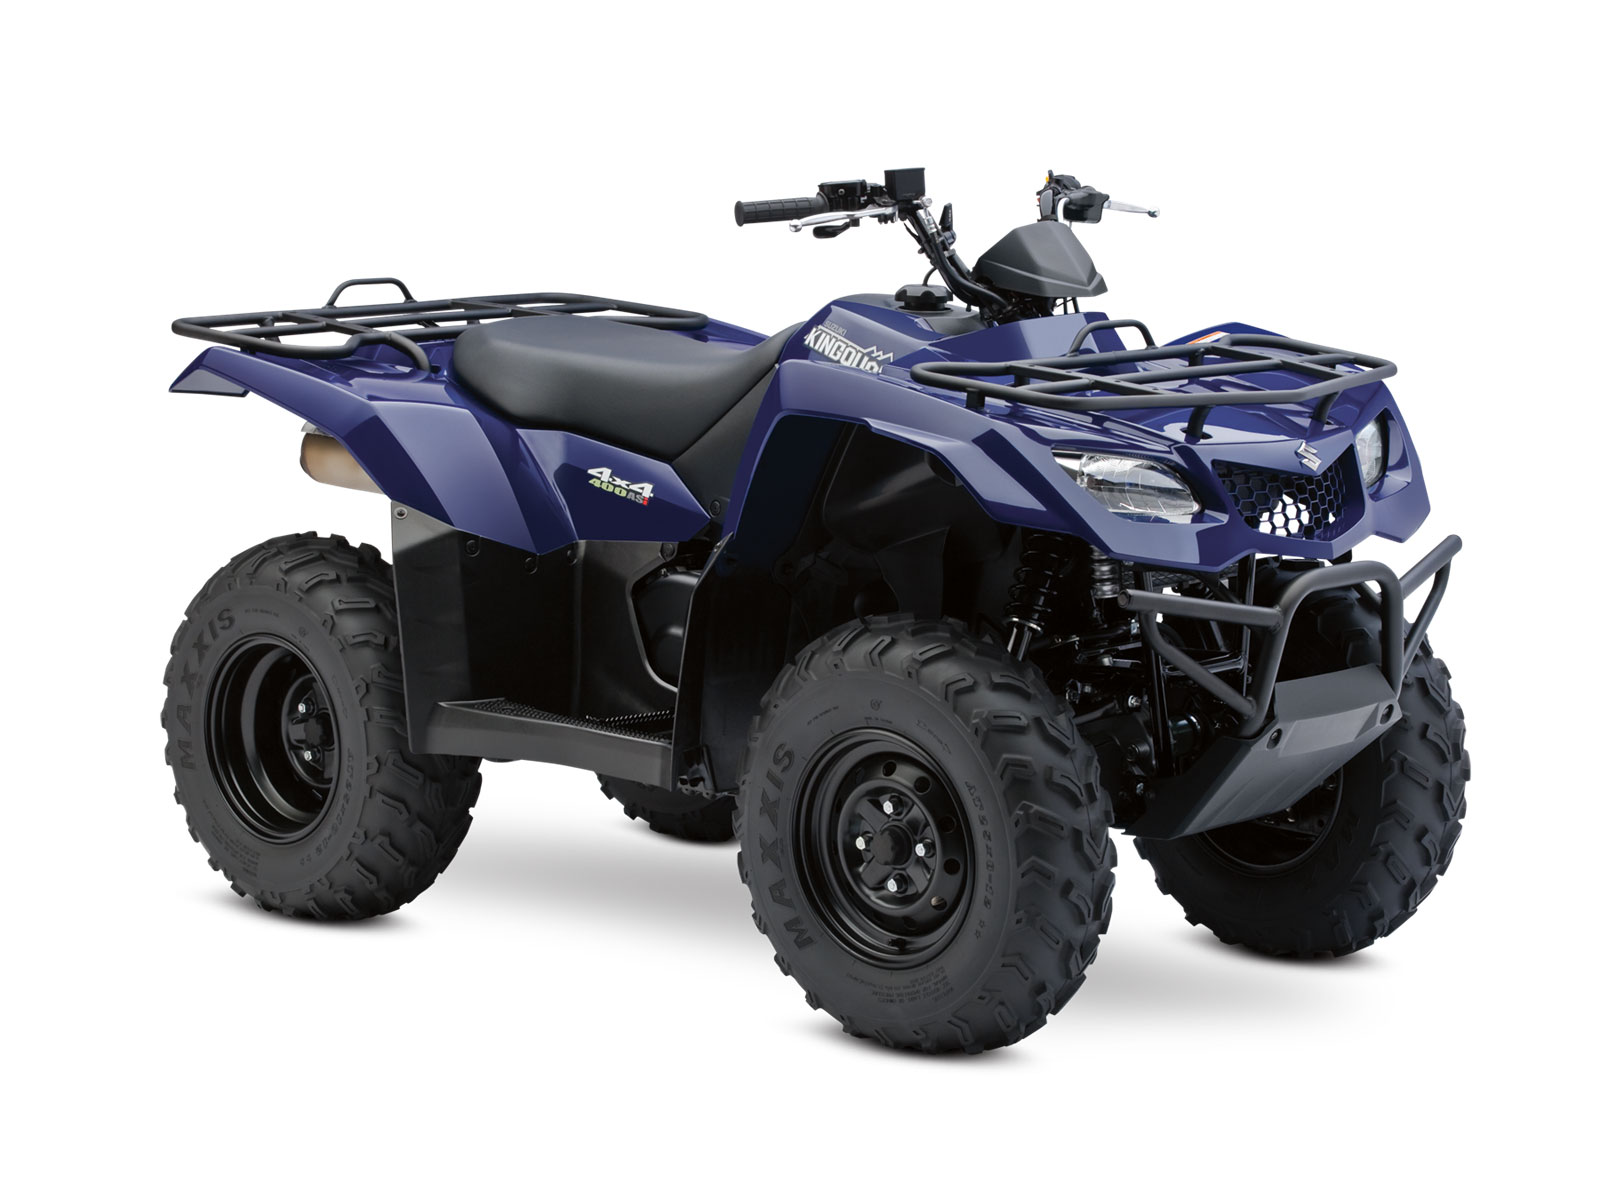 suzuki kingquad 400asi specs 2011 2012 autoevolution. Black Bedroom Furniture Sets. Home Design Ideas